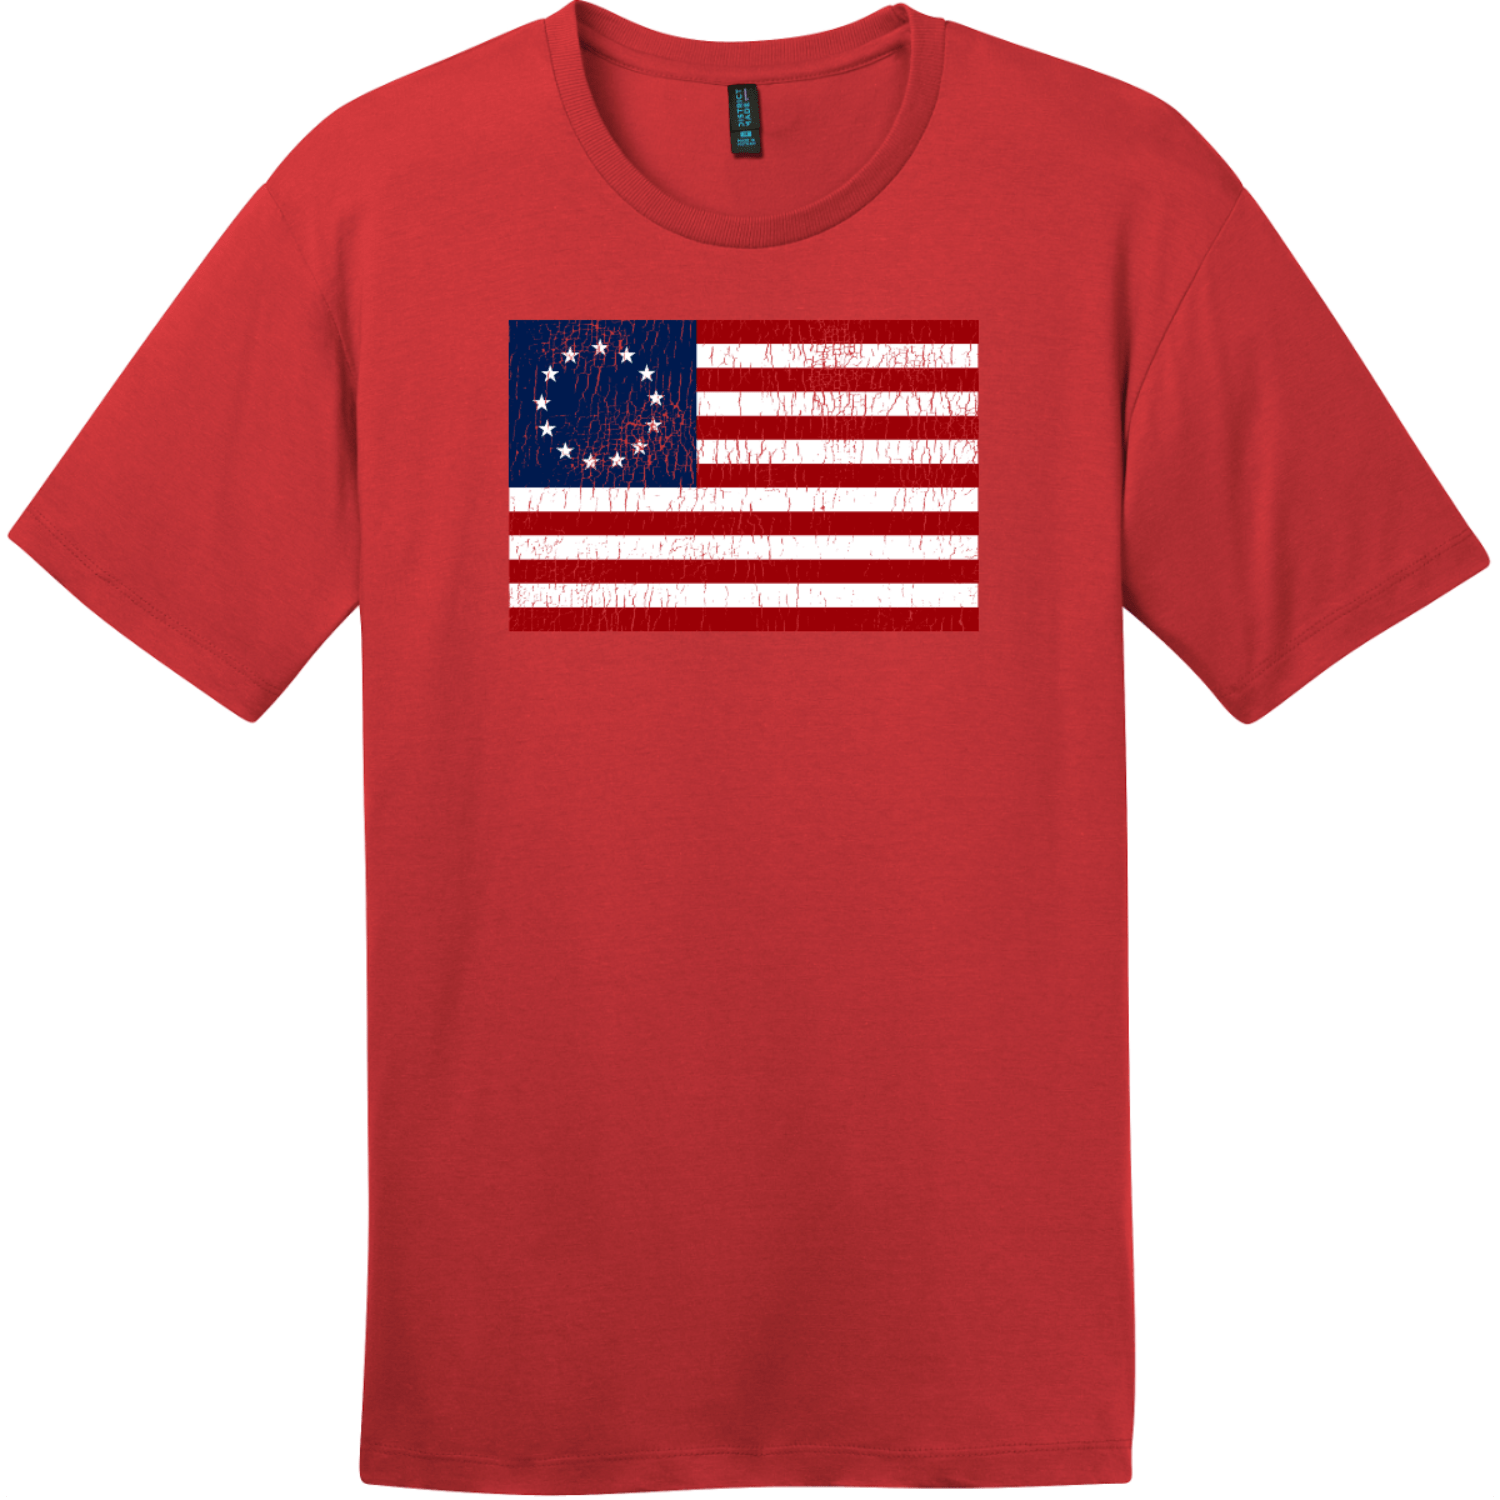 Betsy Ross American Flag Vintage T-Shirt Classic Red District Perfect Weight Tee DT104